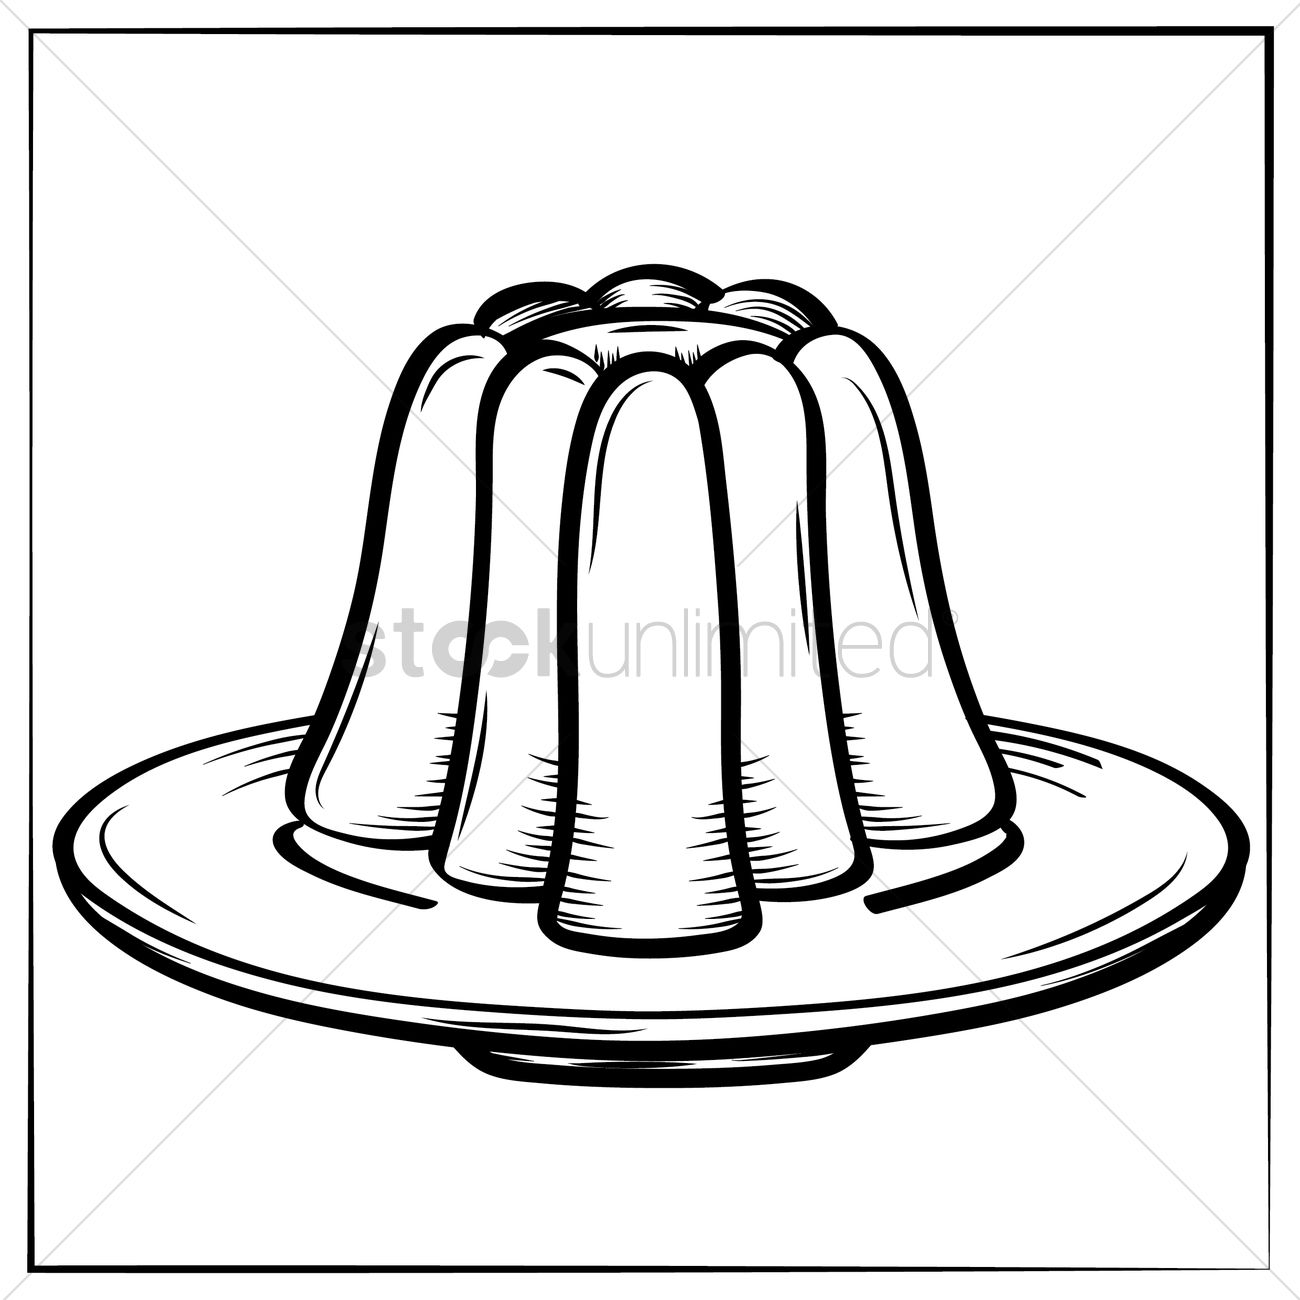 Line Art Jellyfish : Jelly vector image stockunlimited